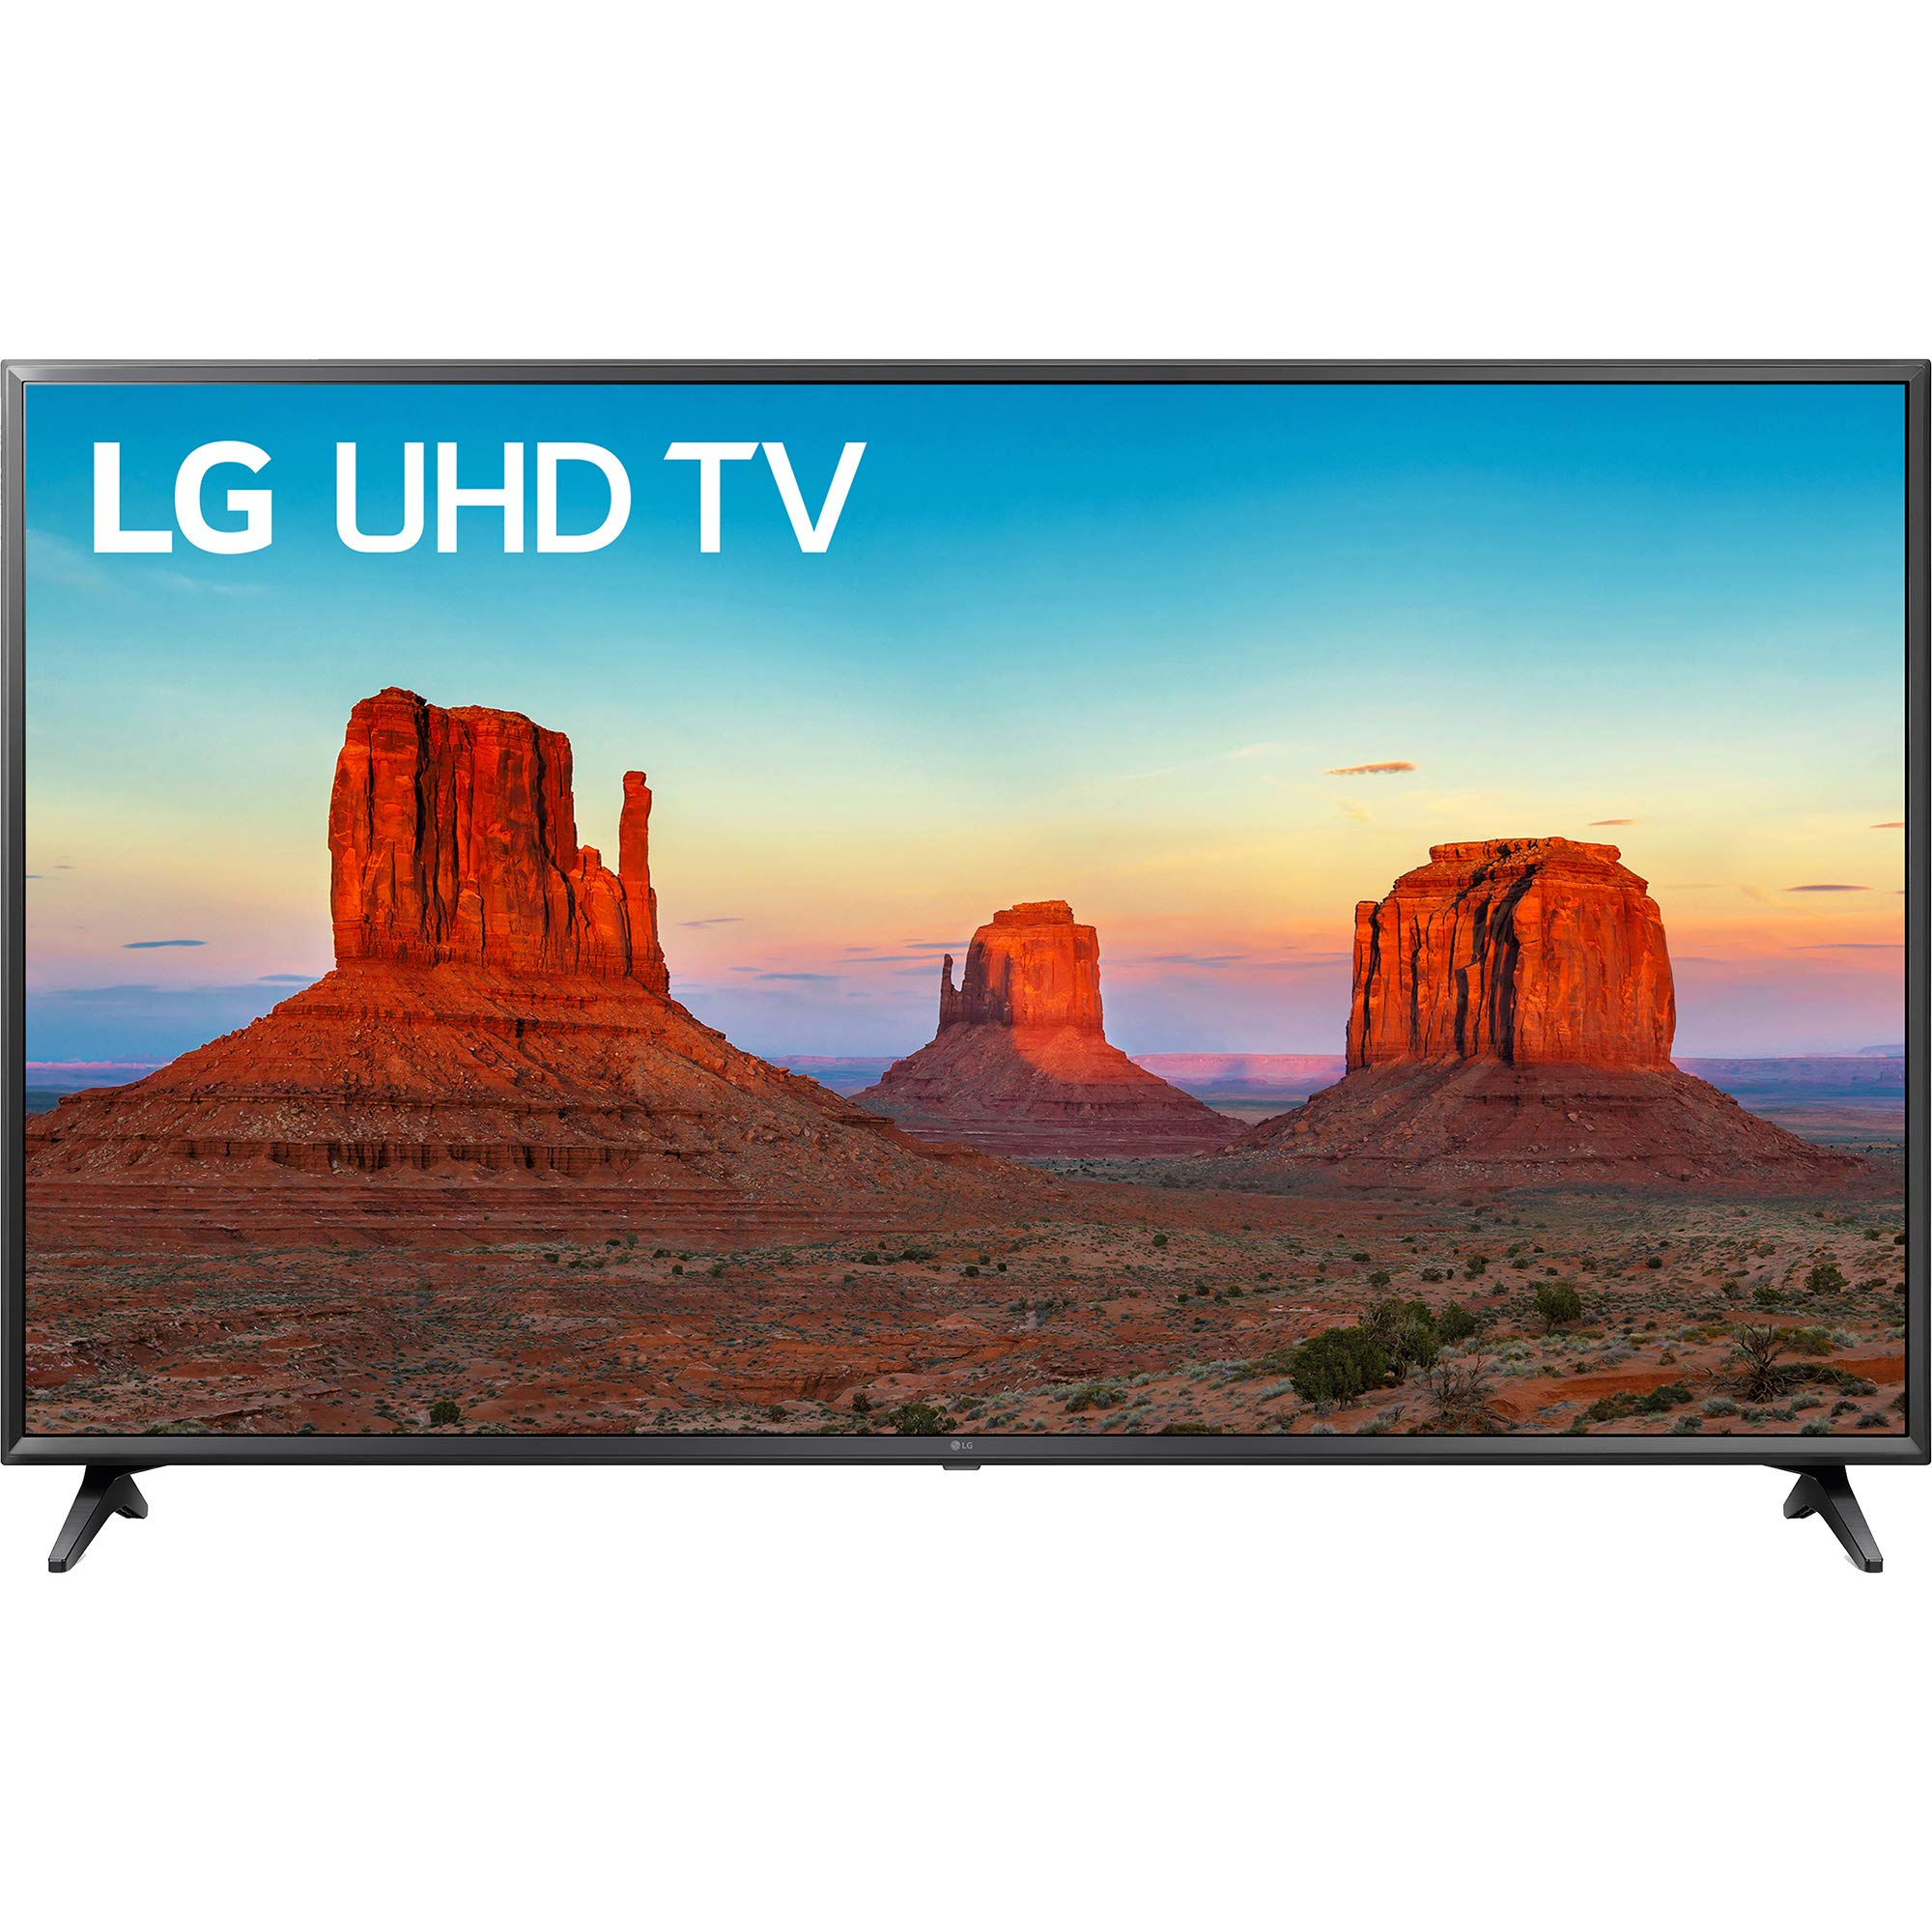 49UK6090 UK6090PUA 4K HDR Smart LED UHD TV - 49'' Class (48.5'' Diag) by LG